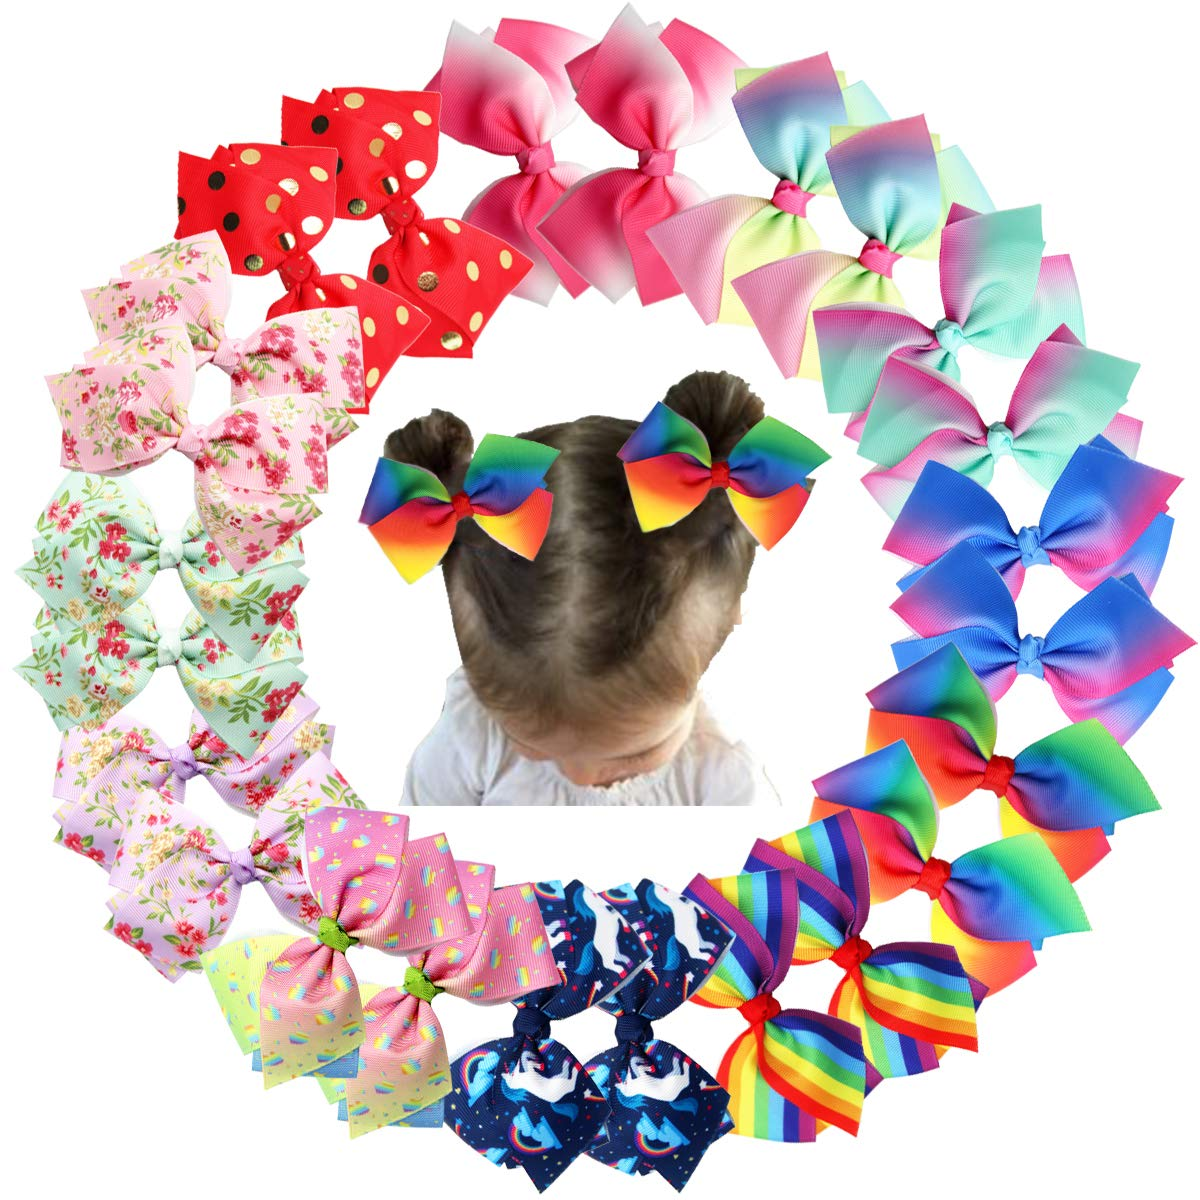 24PCS 4.5Inch Bows for Girls Boutique Grosgrain Ribbon Rainbow Hair Bow Alligator Hair Clips Pigtail Bows Unicorn Hair Clips for Baby Girls Toddler Kids Teens Children in Pairs